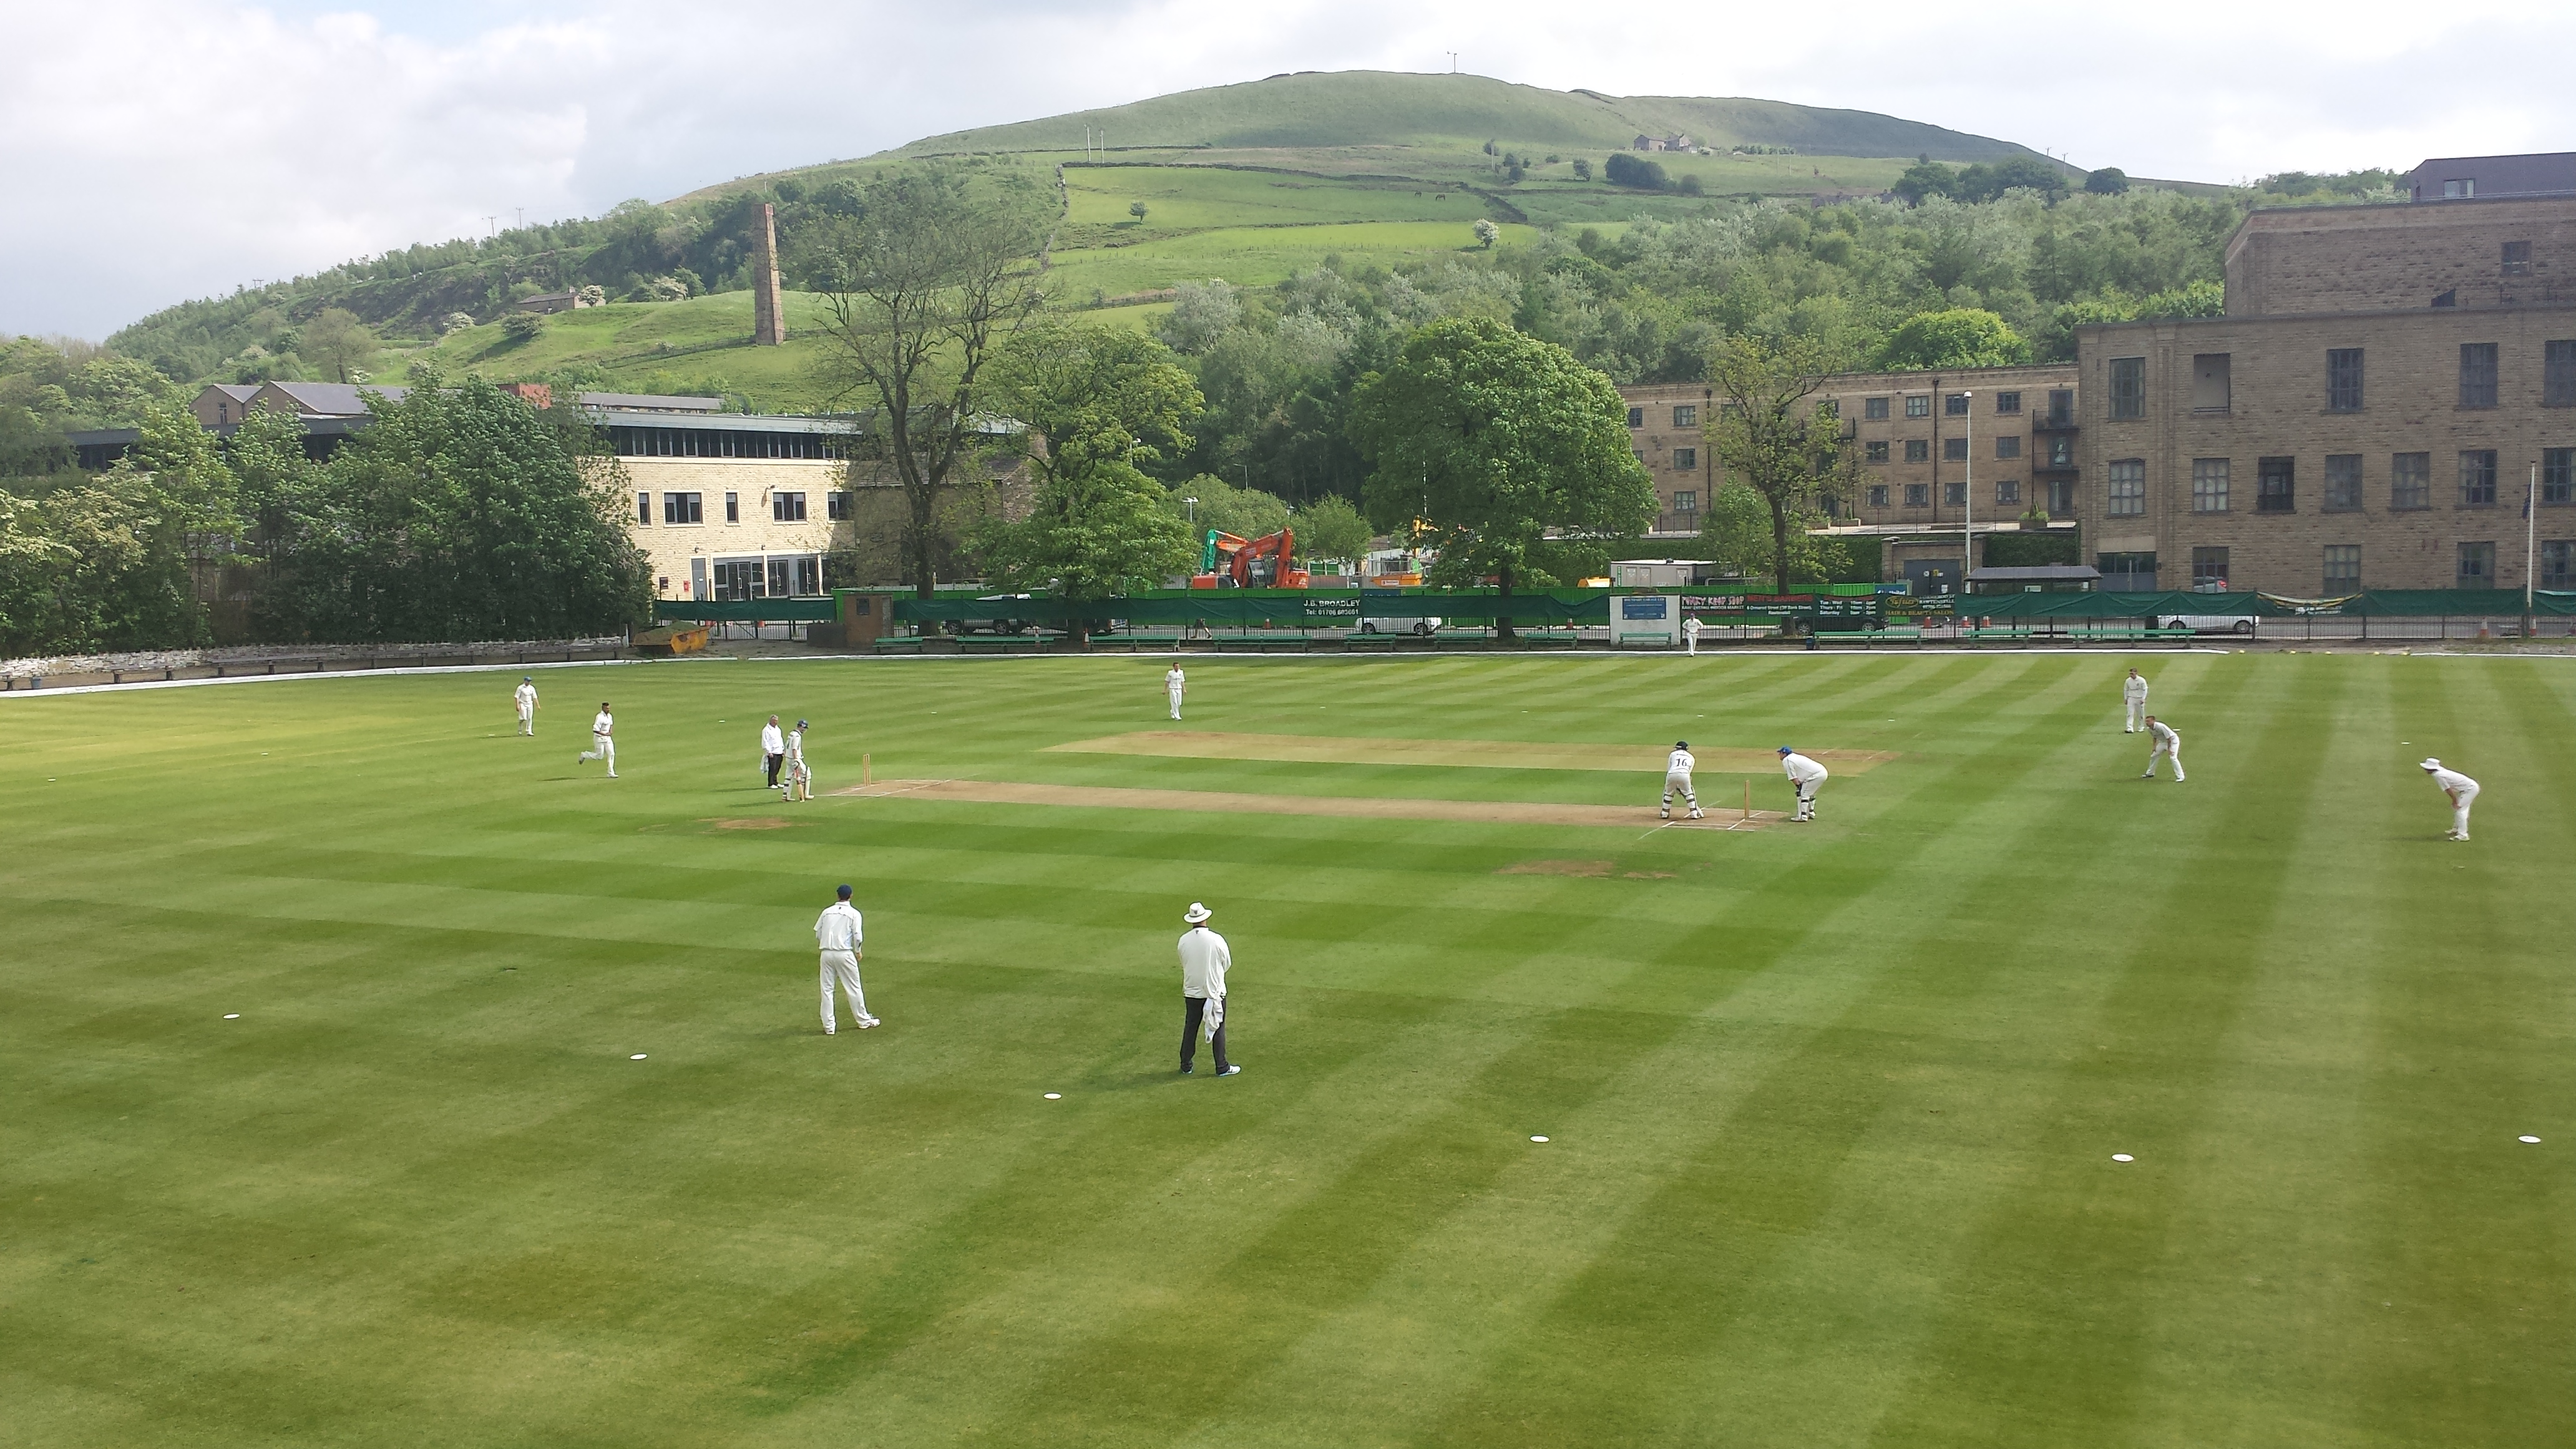 Rawtenstall v Bacup at the WCG